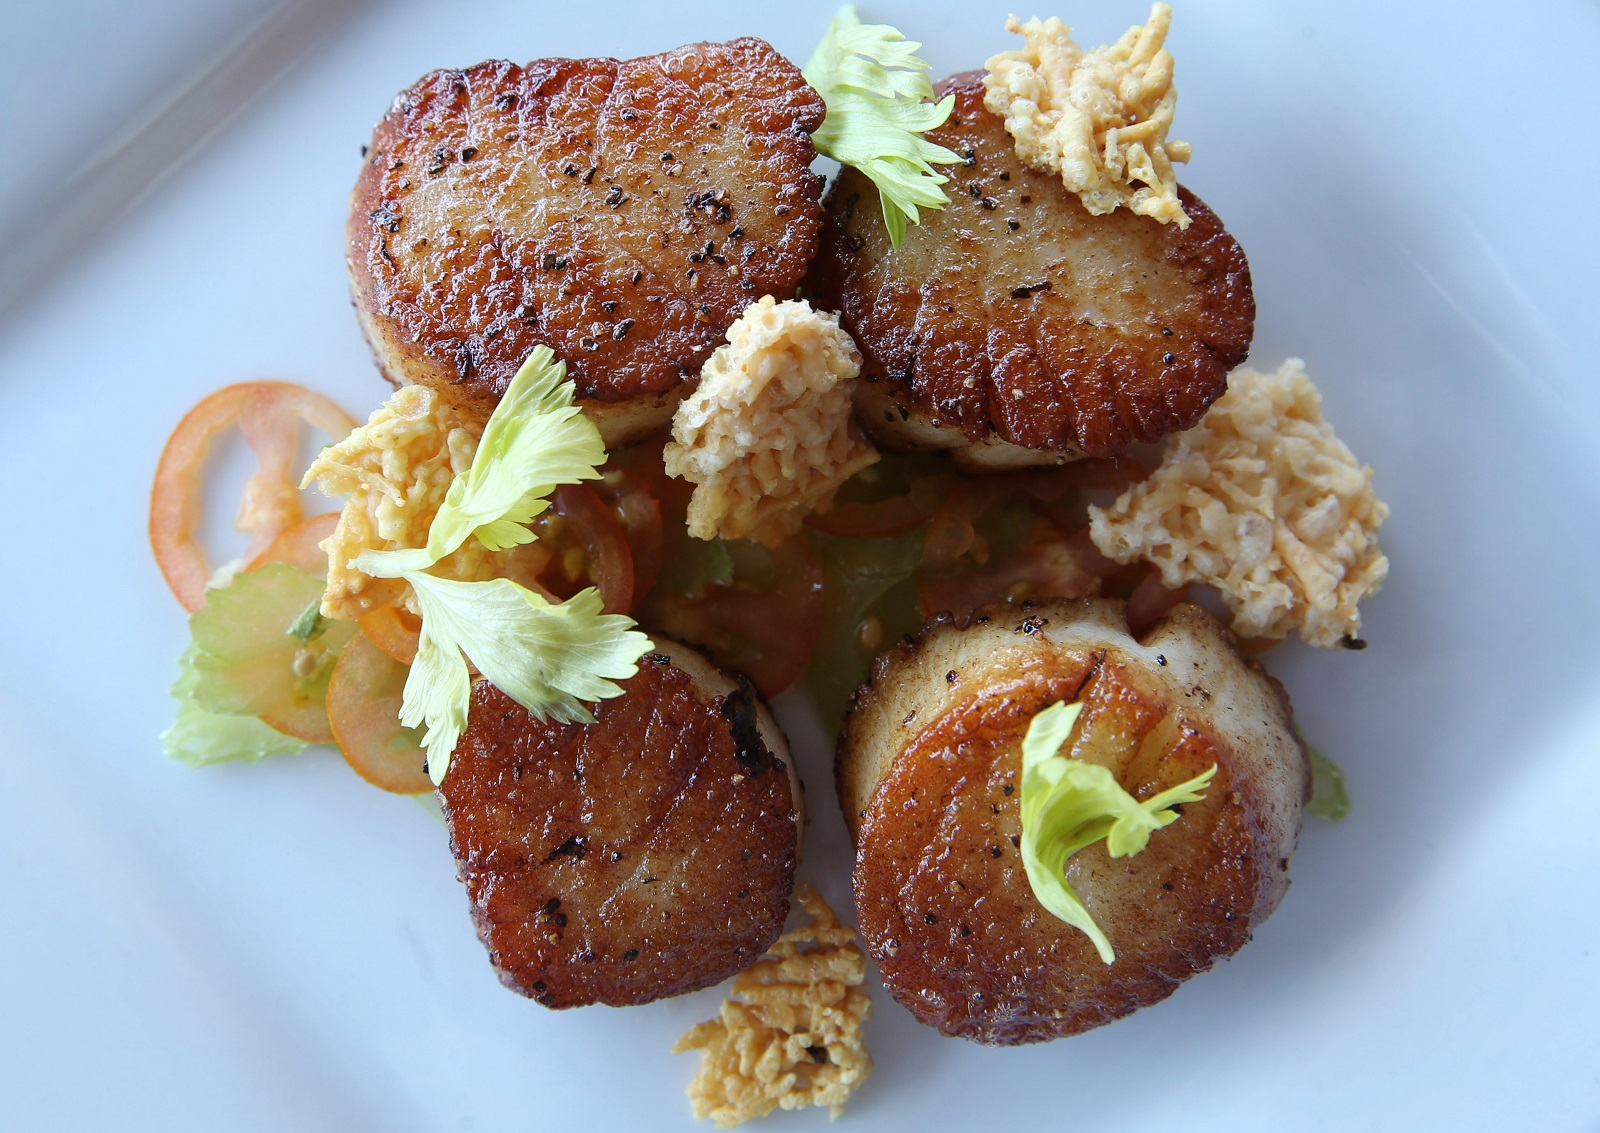 Seared sea scallops are with tomato and celery salad, parmesan crisps and lemon oil. (Sharon Cantillon/Buffalo News)